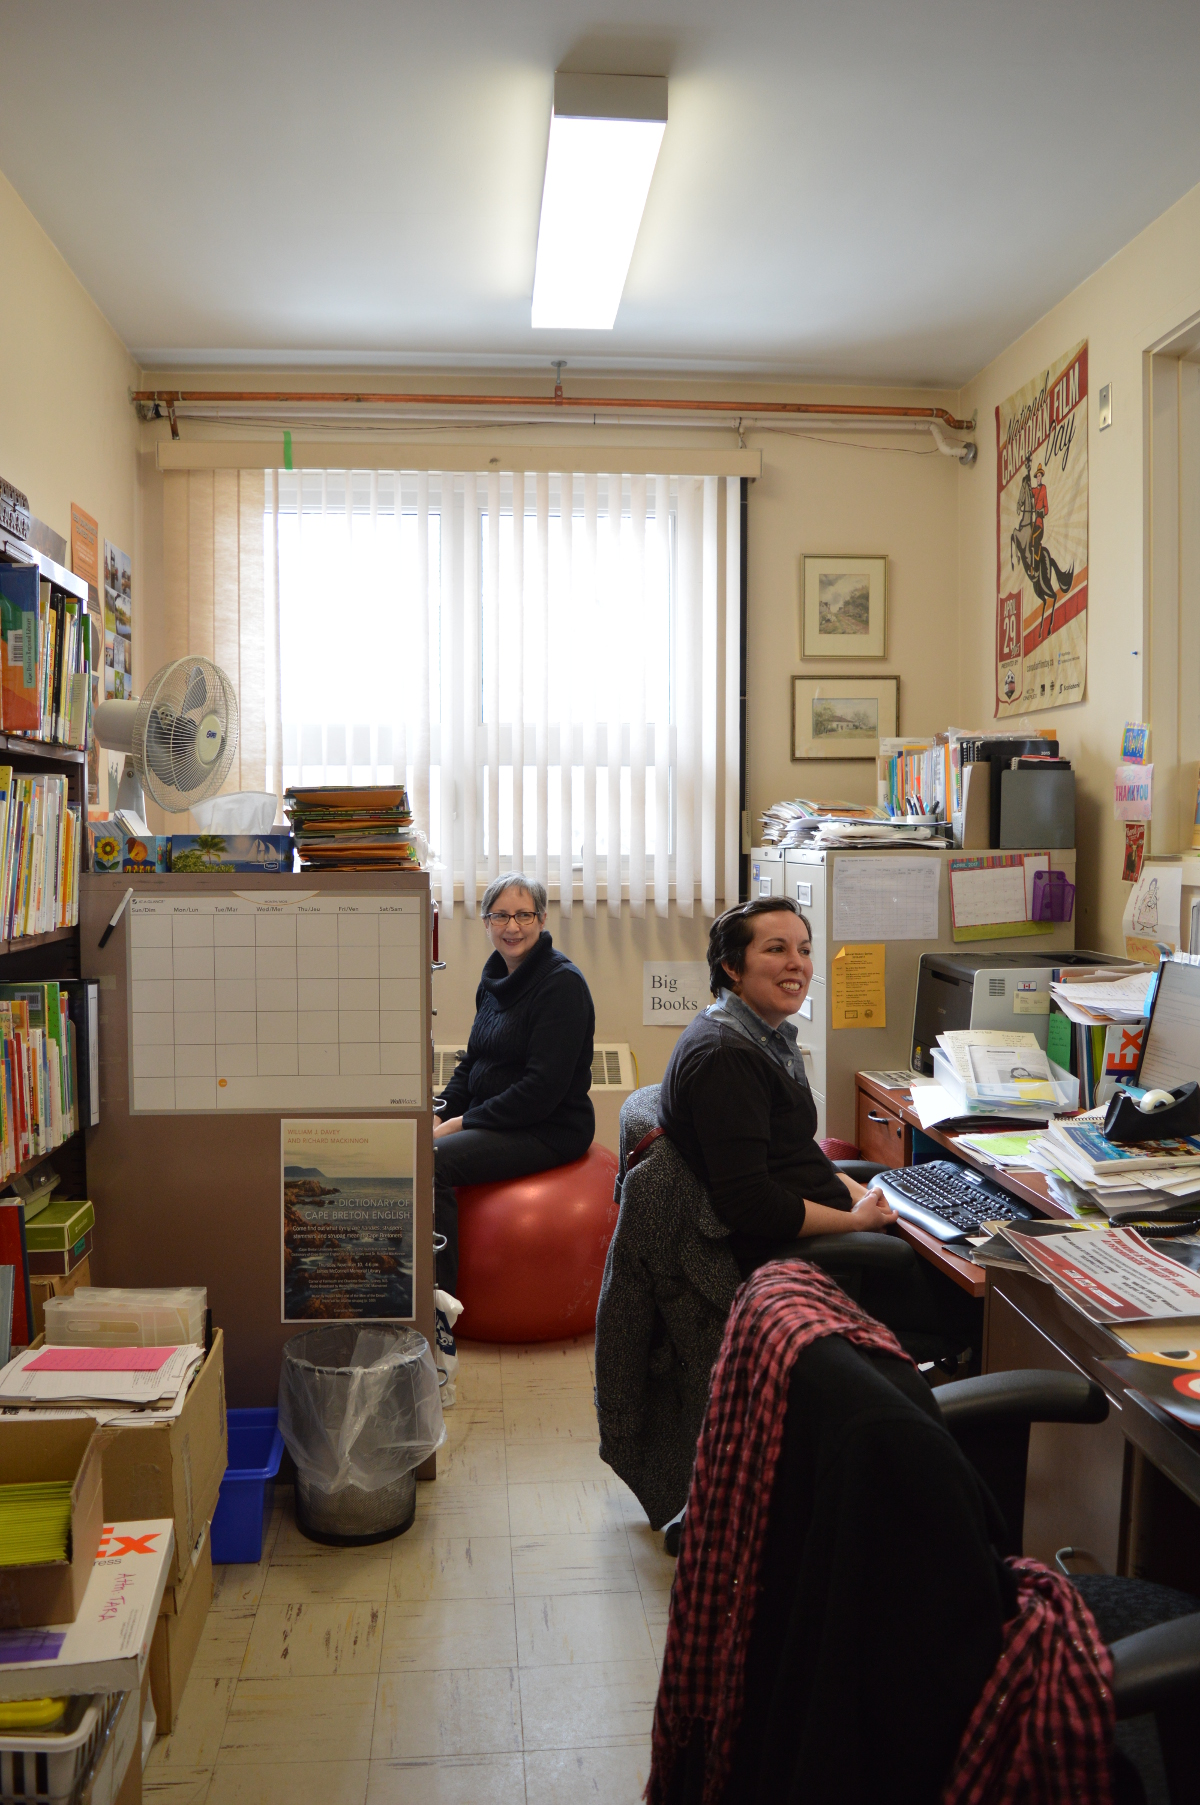 Chris Thompson (l) and Tara MacNeil (r). Planning big events in a small space.